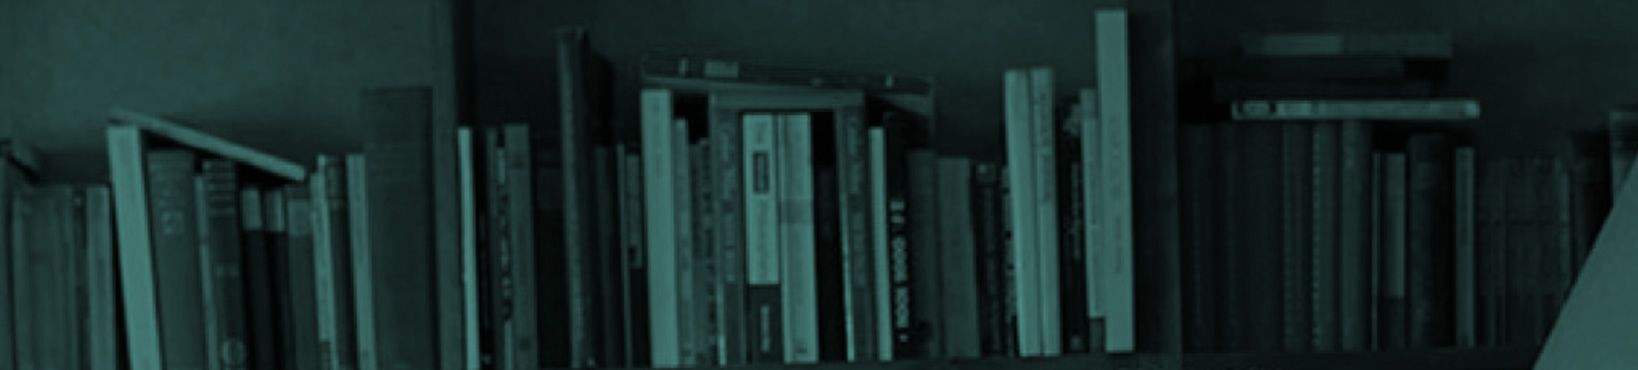 roger-scruton-library-header